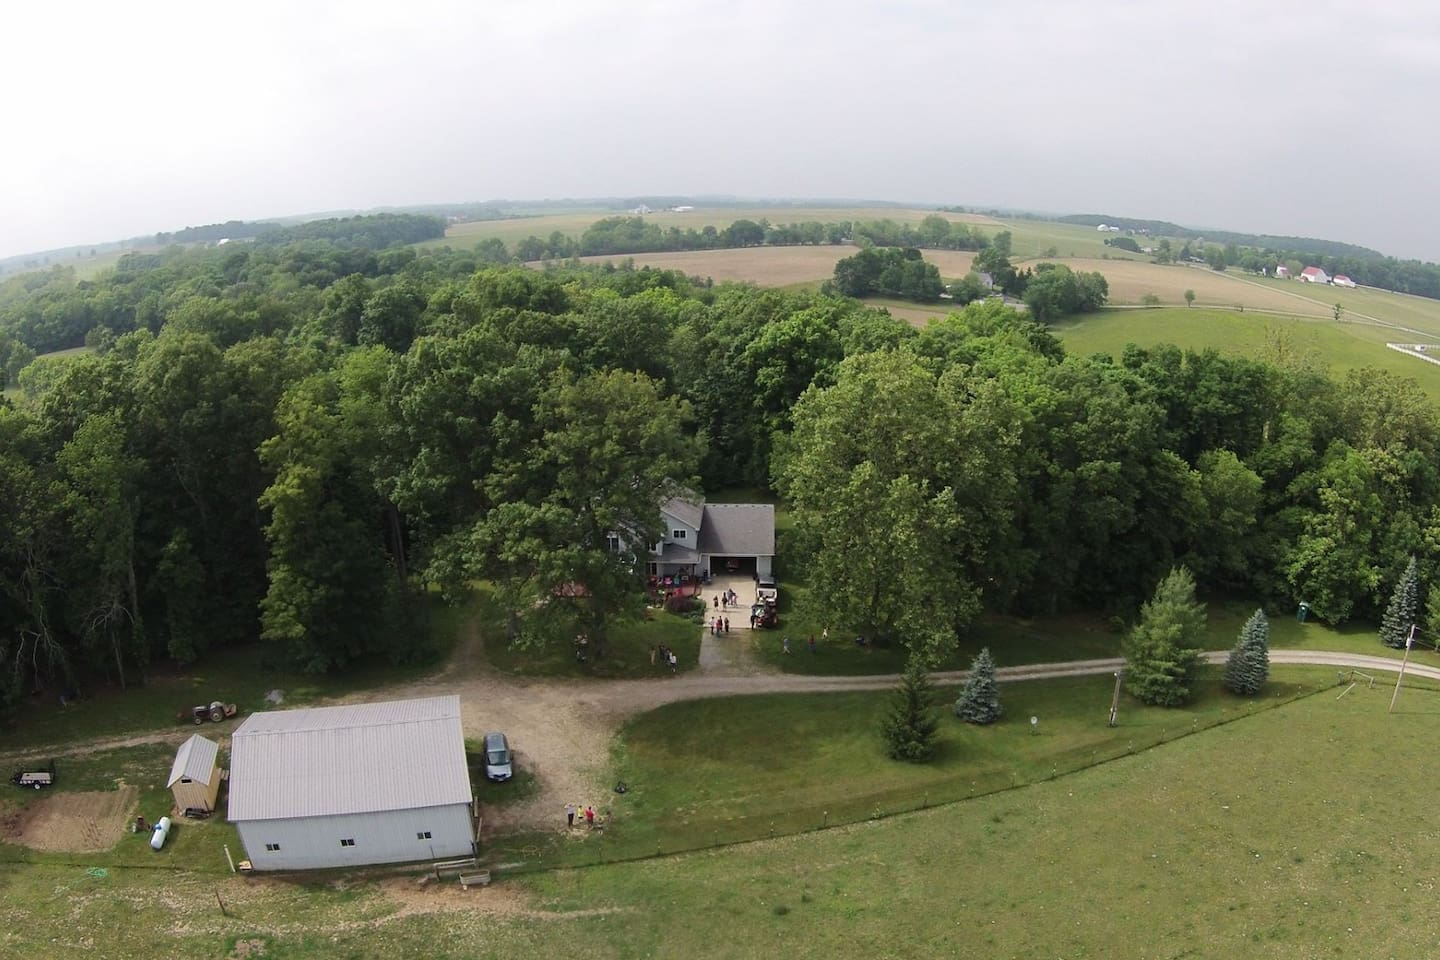 Woodhaven Farm house site and surrounding country side. Driveway is a long (0.3 mile) well maintained gravel drive leading off a paved county road.